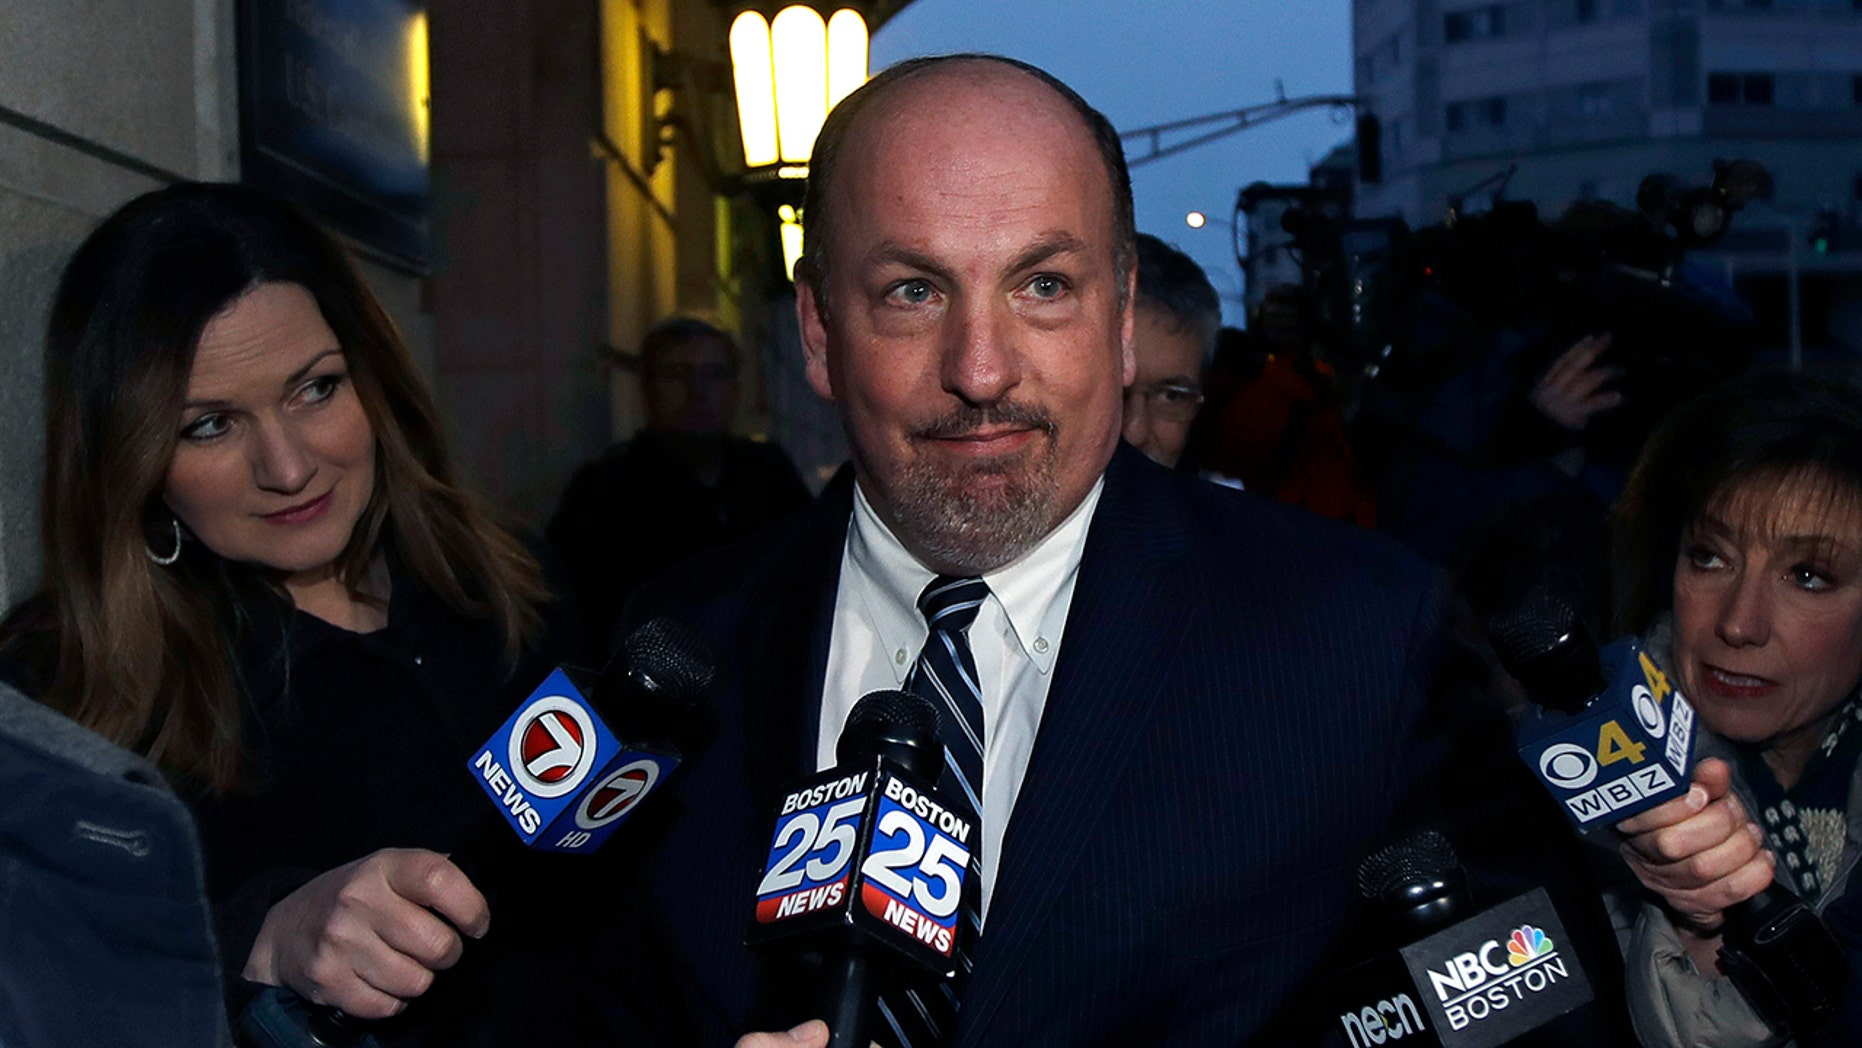 Former Massachusetts state Sen. Brian Joyce talks to reporters after leaving a federal courthouse in Worcester, Mass., Dec. 8, 2017.